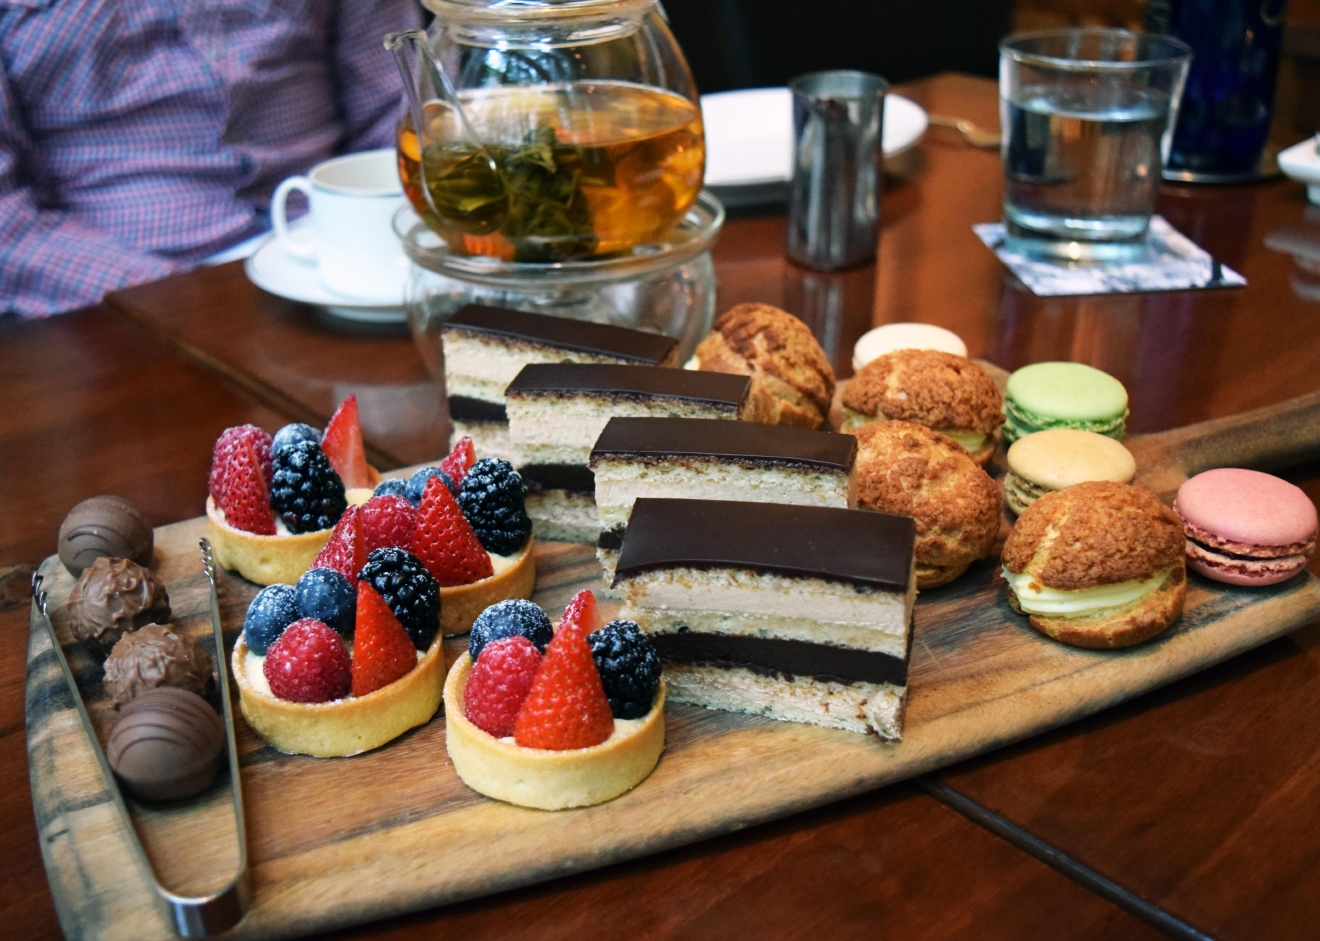 Any tea priced up to $14 is included in the price of the tea; for higher priced offerings, $14 is deducted from their price and you pay the difference. (Park Hyatt)